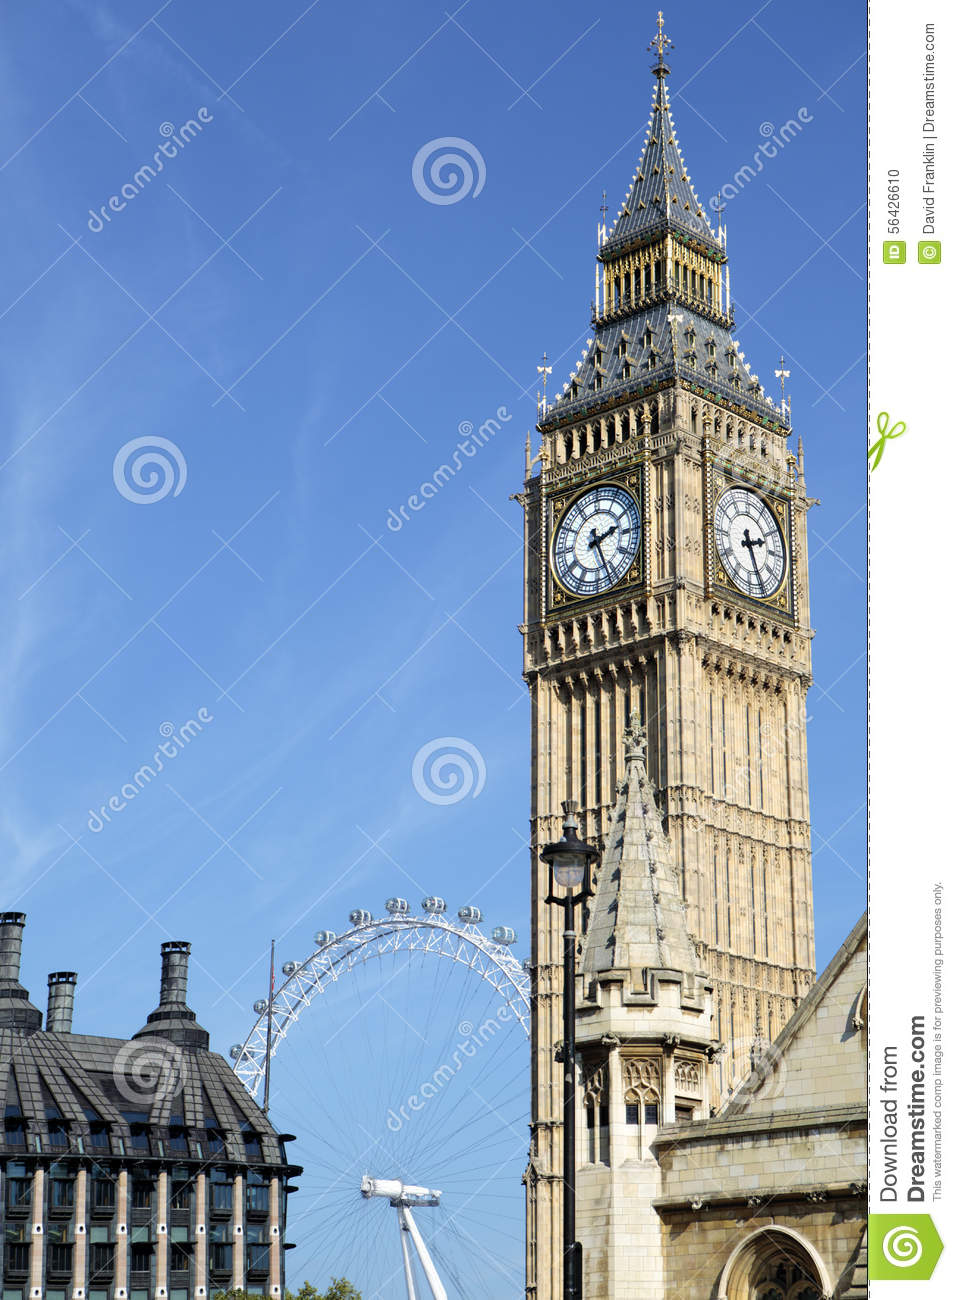 View of Big Ben clock tower from Parliament Square London. Millenium ...